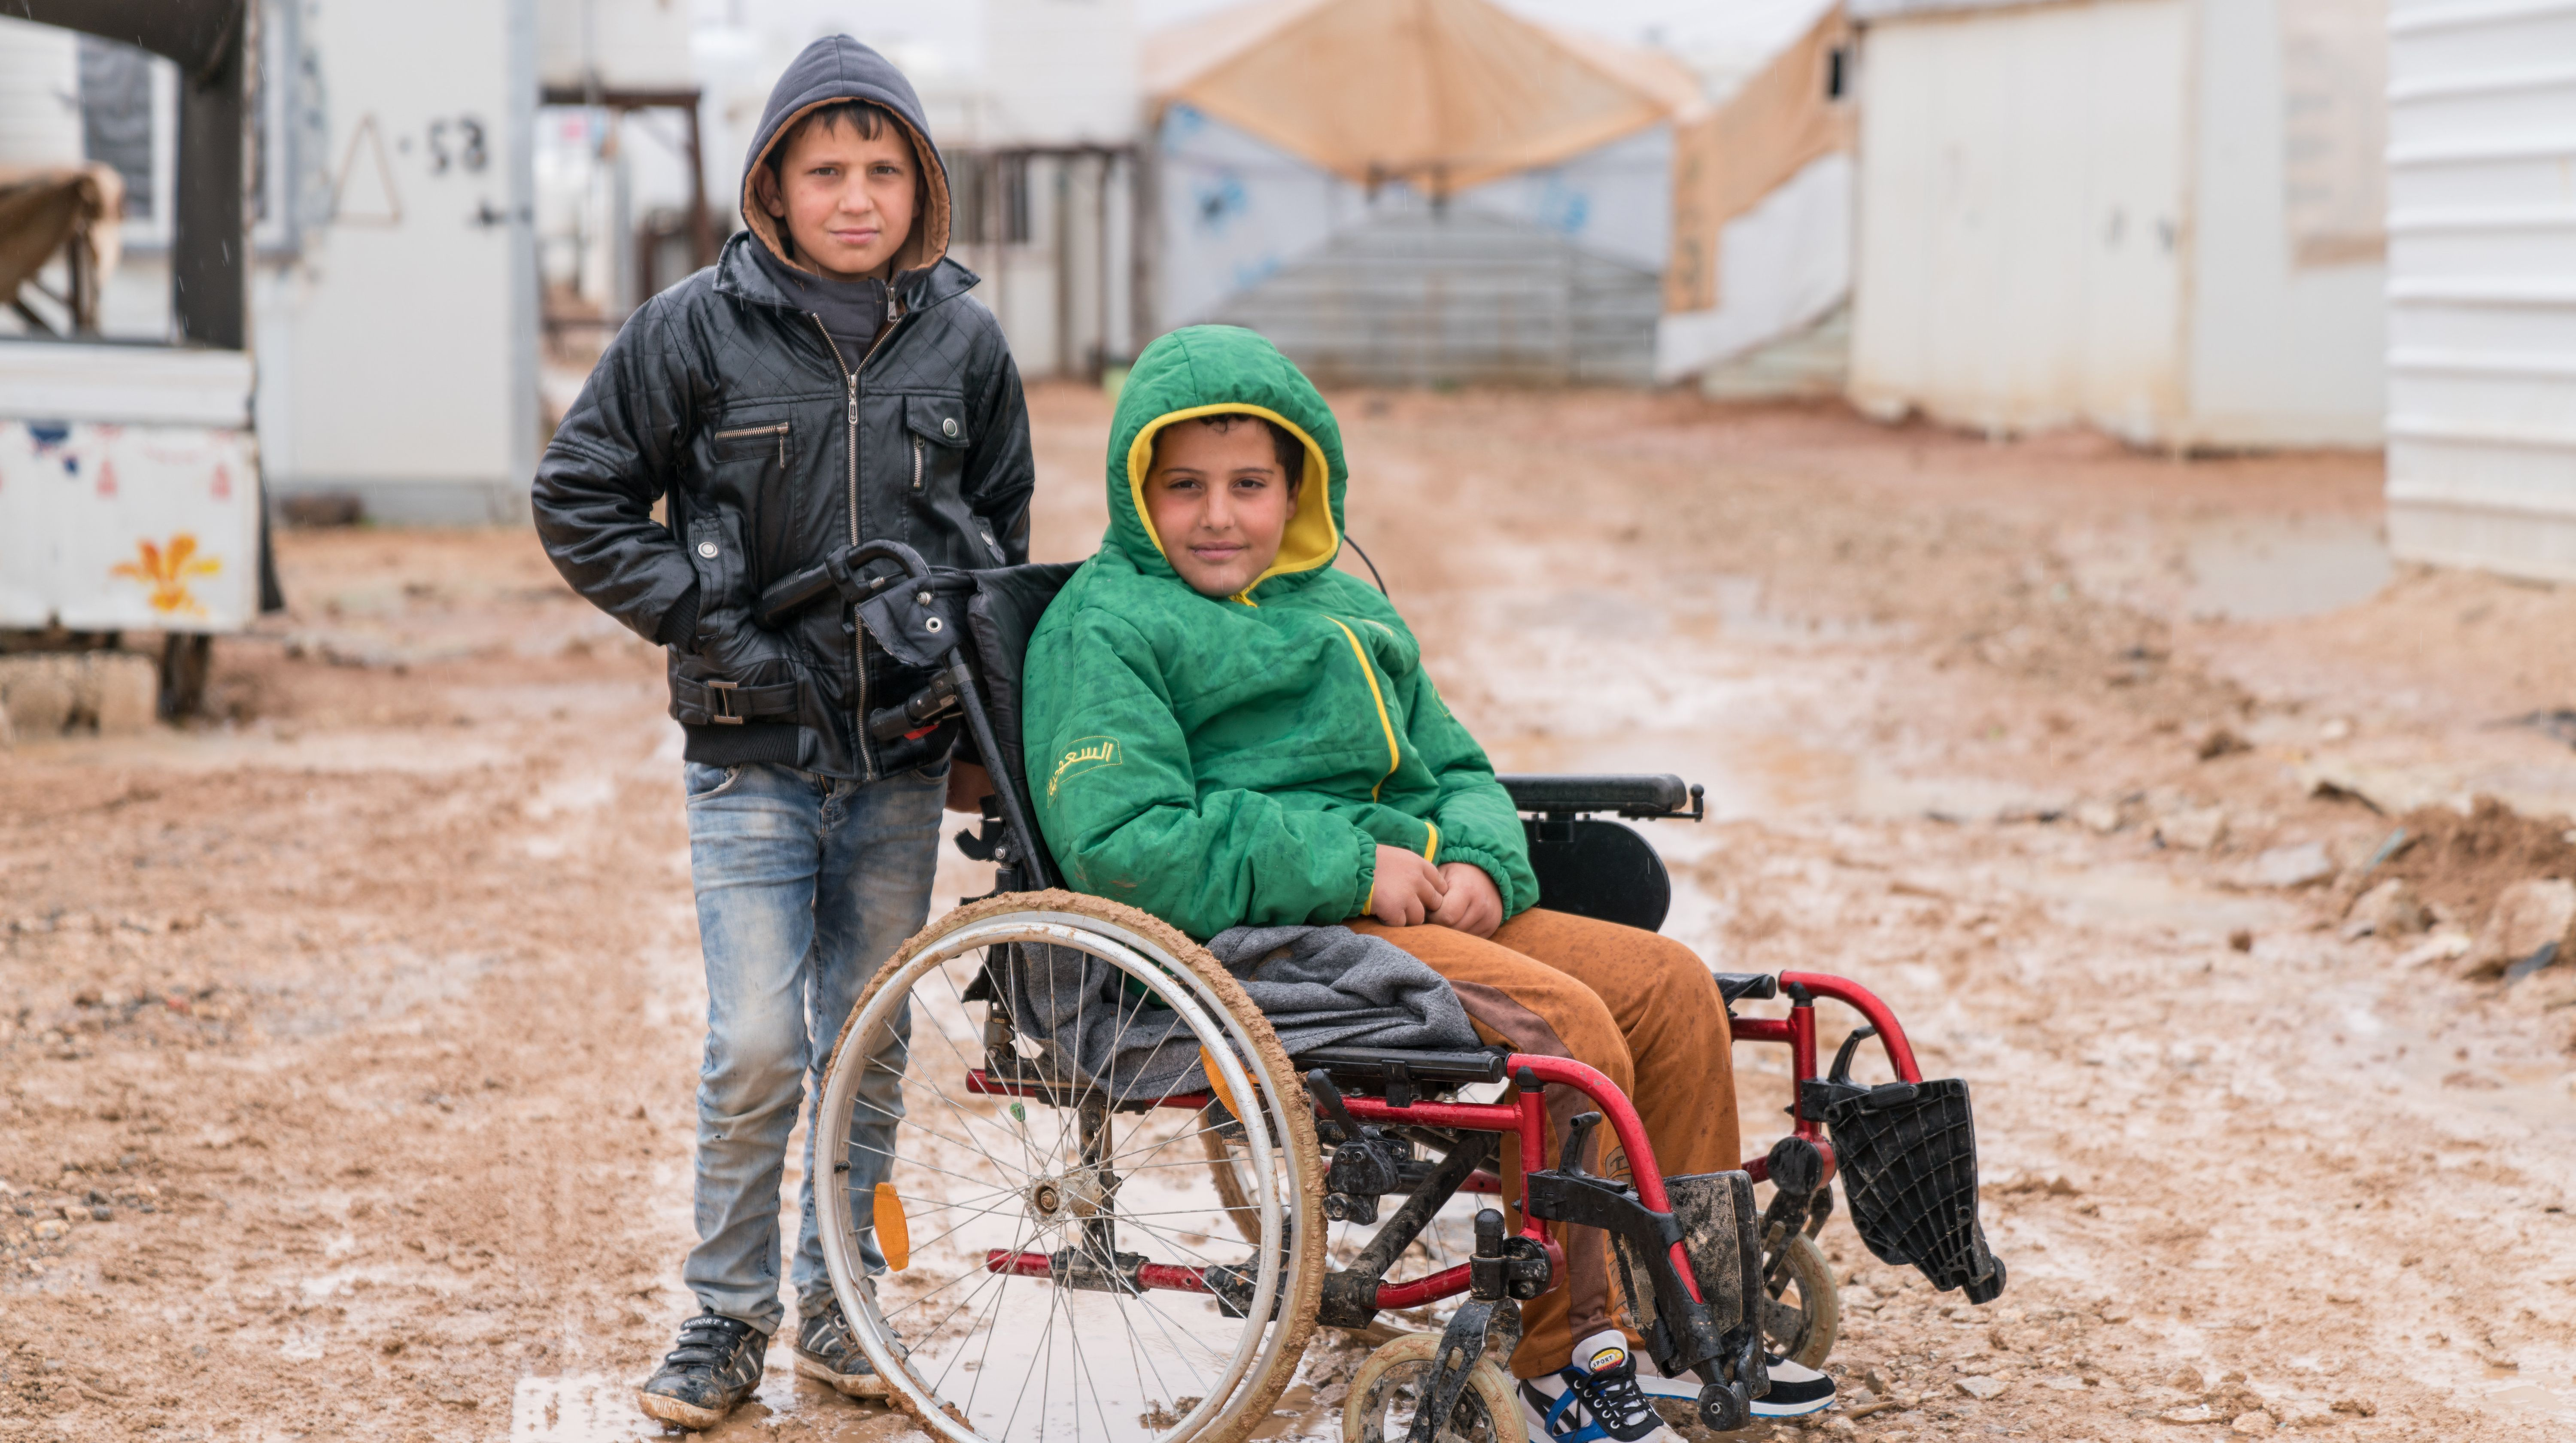 Syrian Best Friends Stick Together Against All Odds